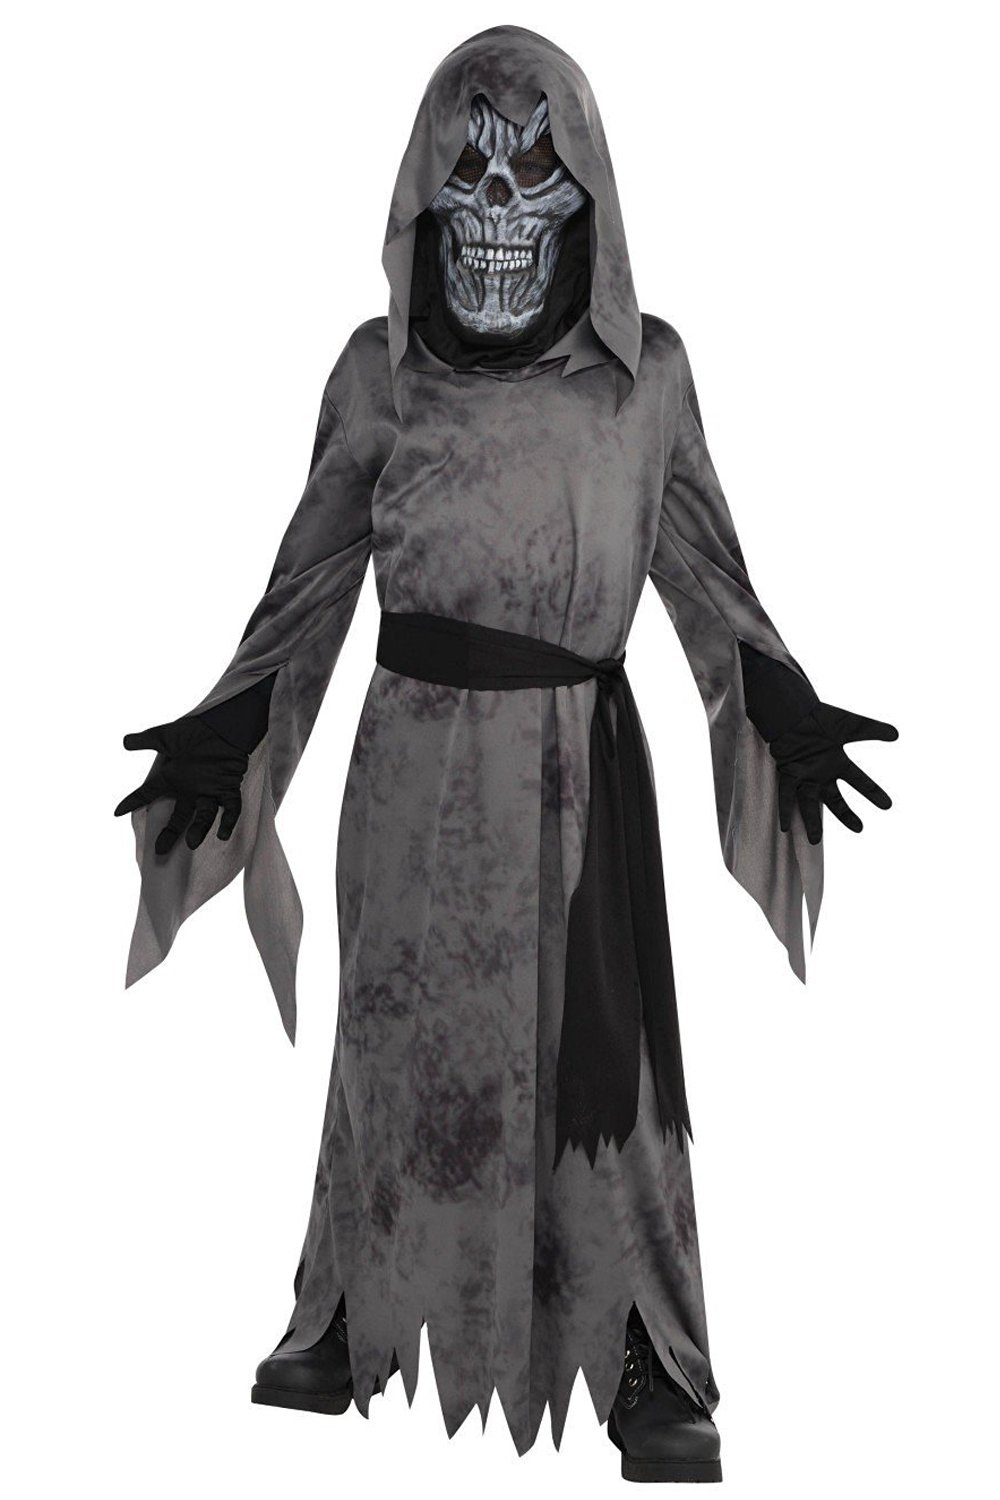 Ghastly Ghoul (Black) Costume - Age 4-6 Years - 1 PC  Amazon.co.uk ... 5d5eadb98